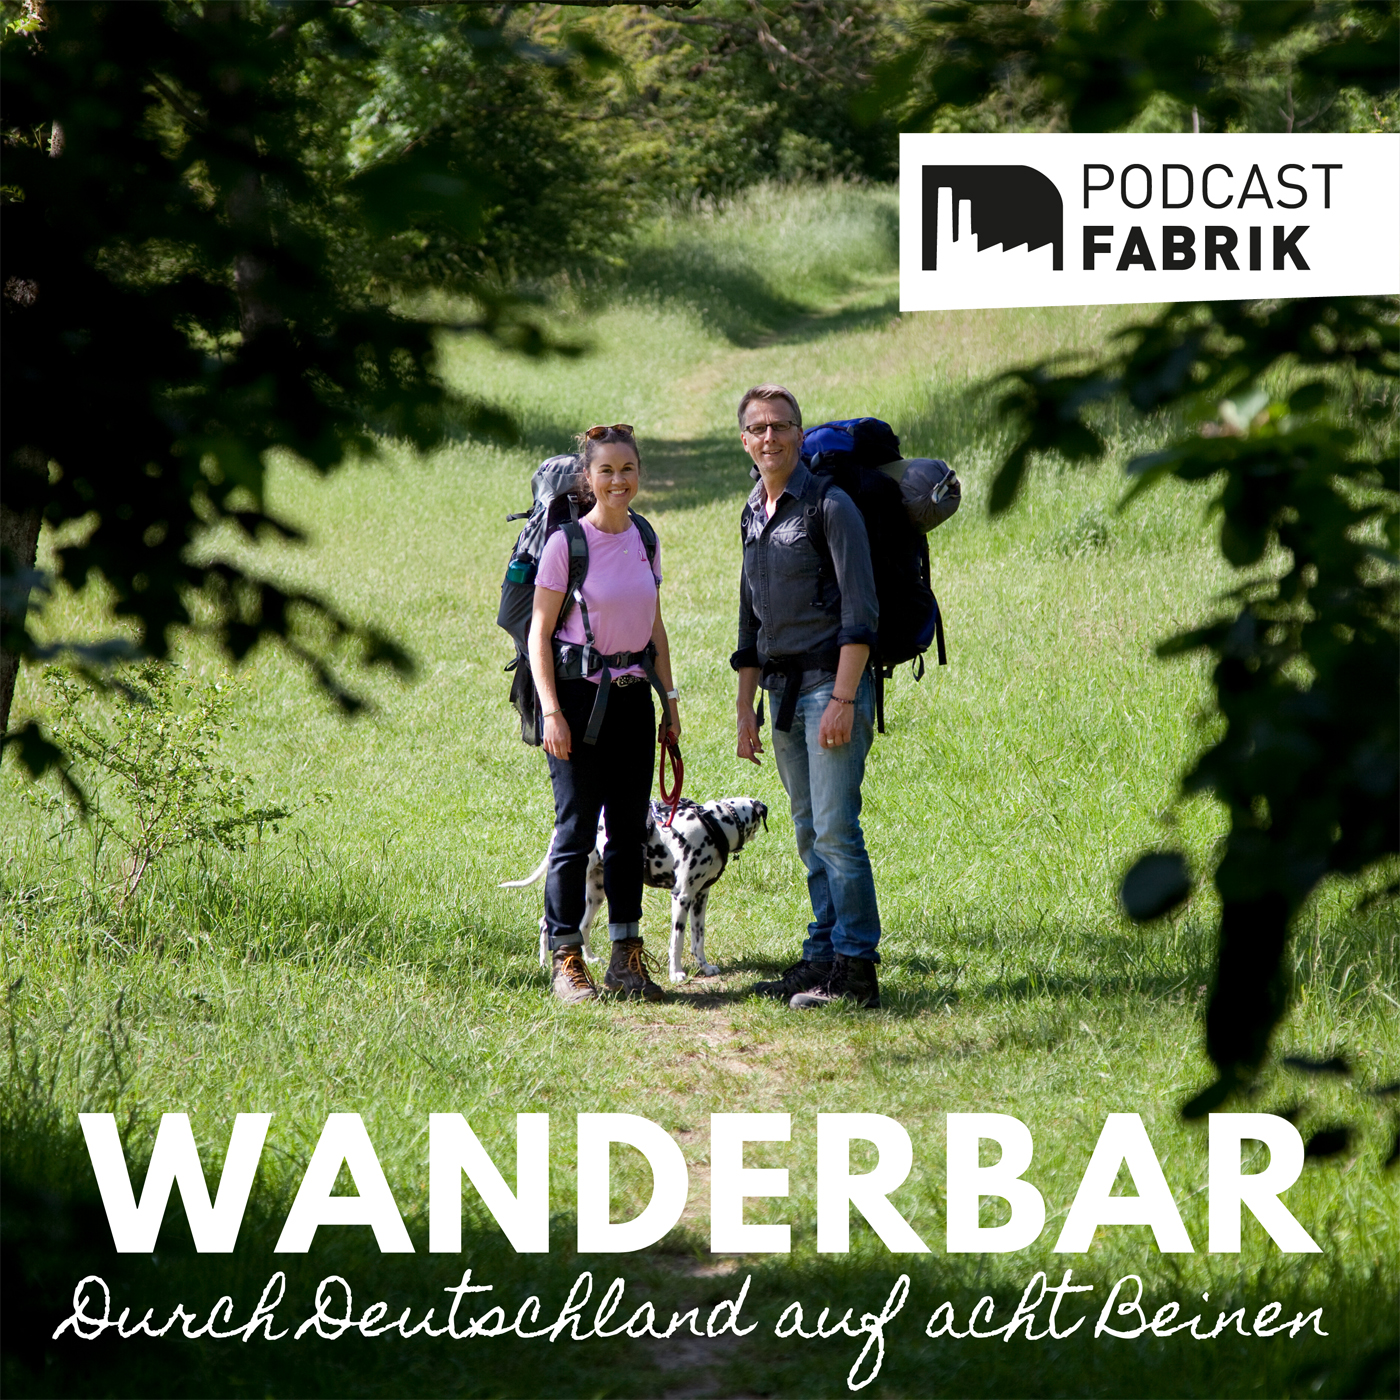 Wanderbar Podcast Cover